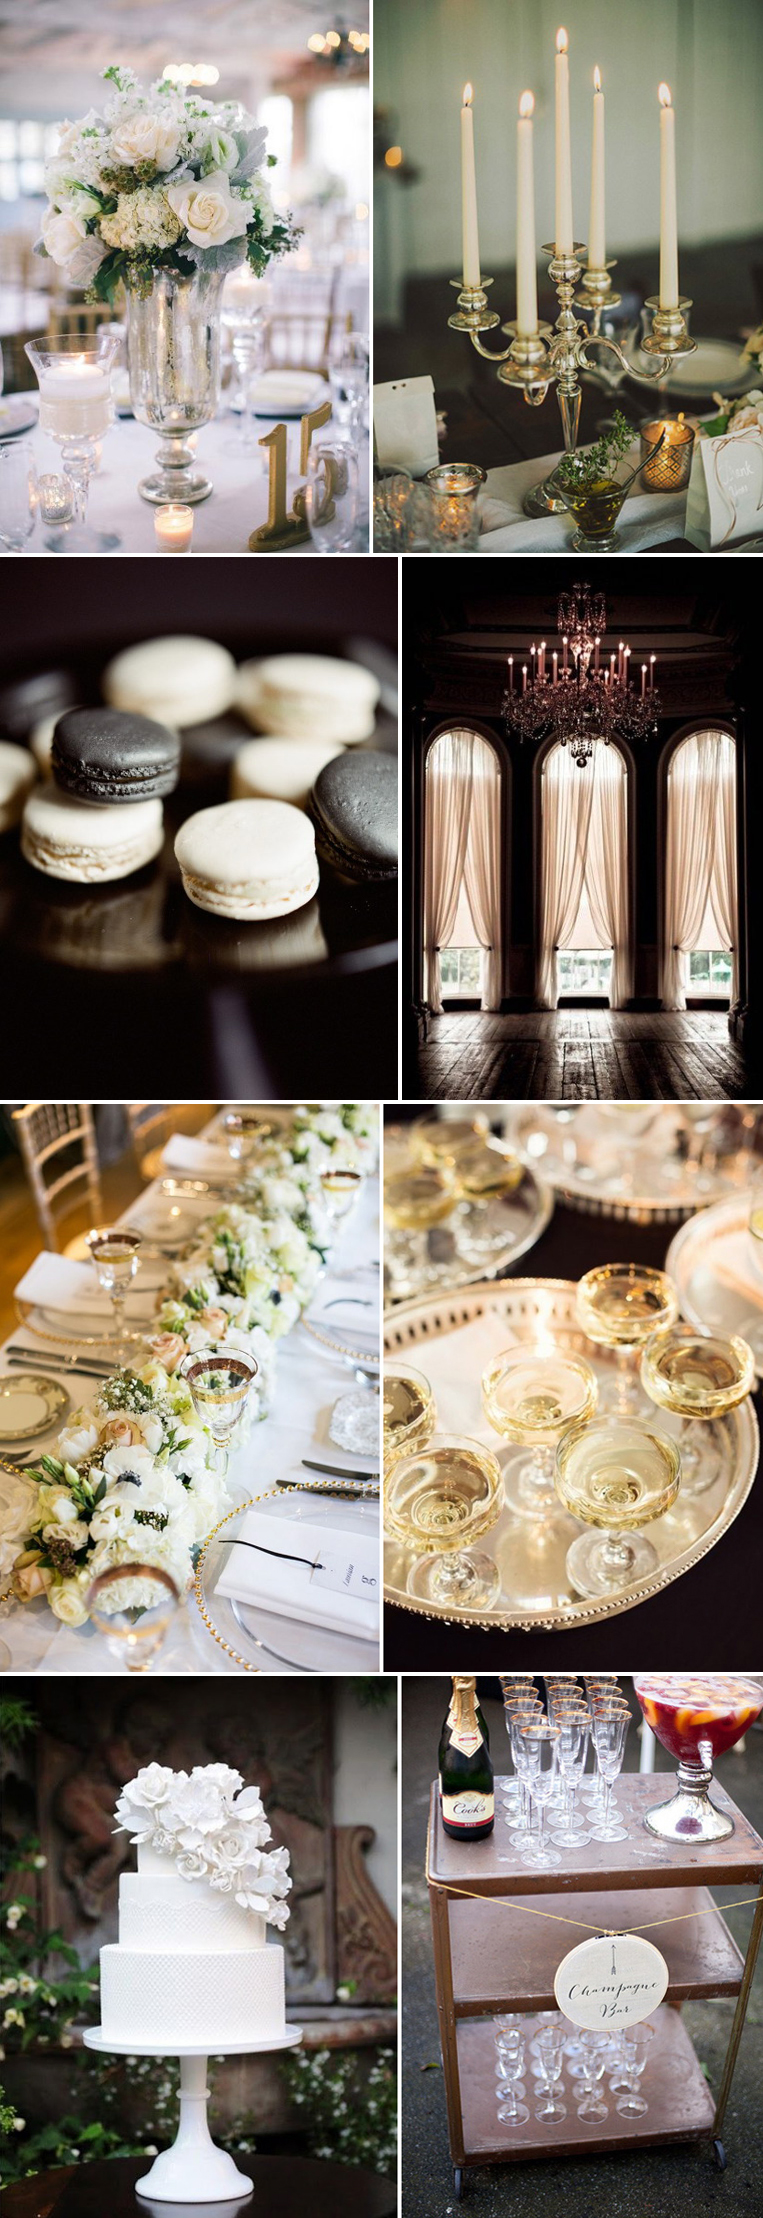 Coco Wedding Venues - Classic Elegance - Wedding Style Category - Dine.